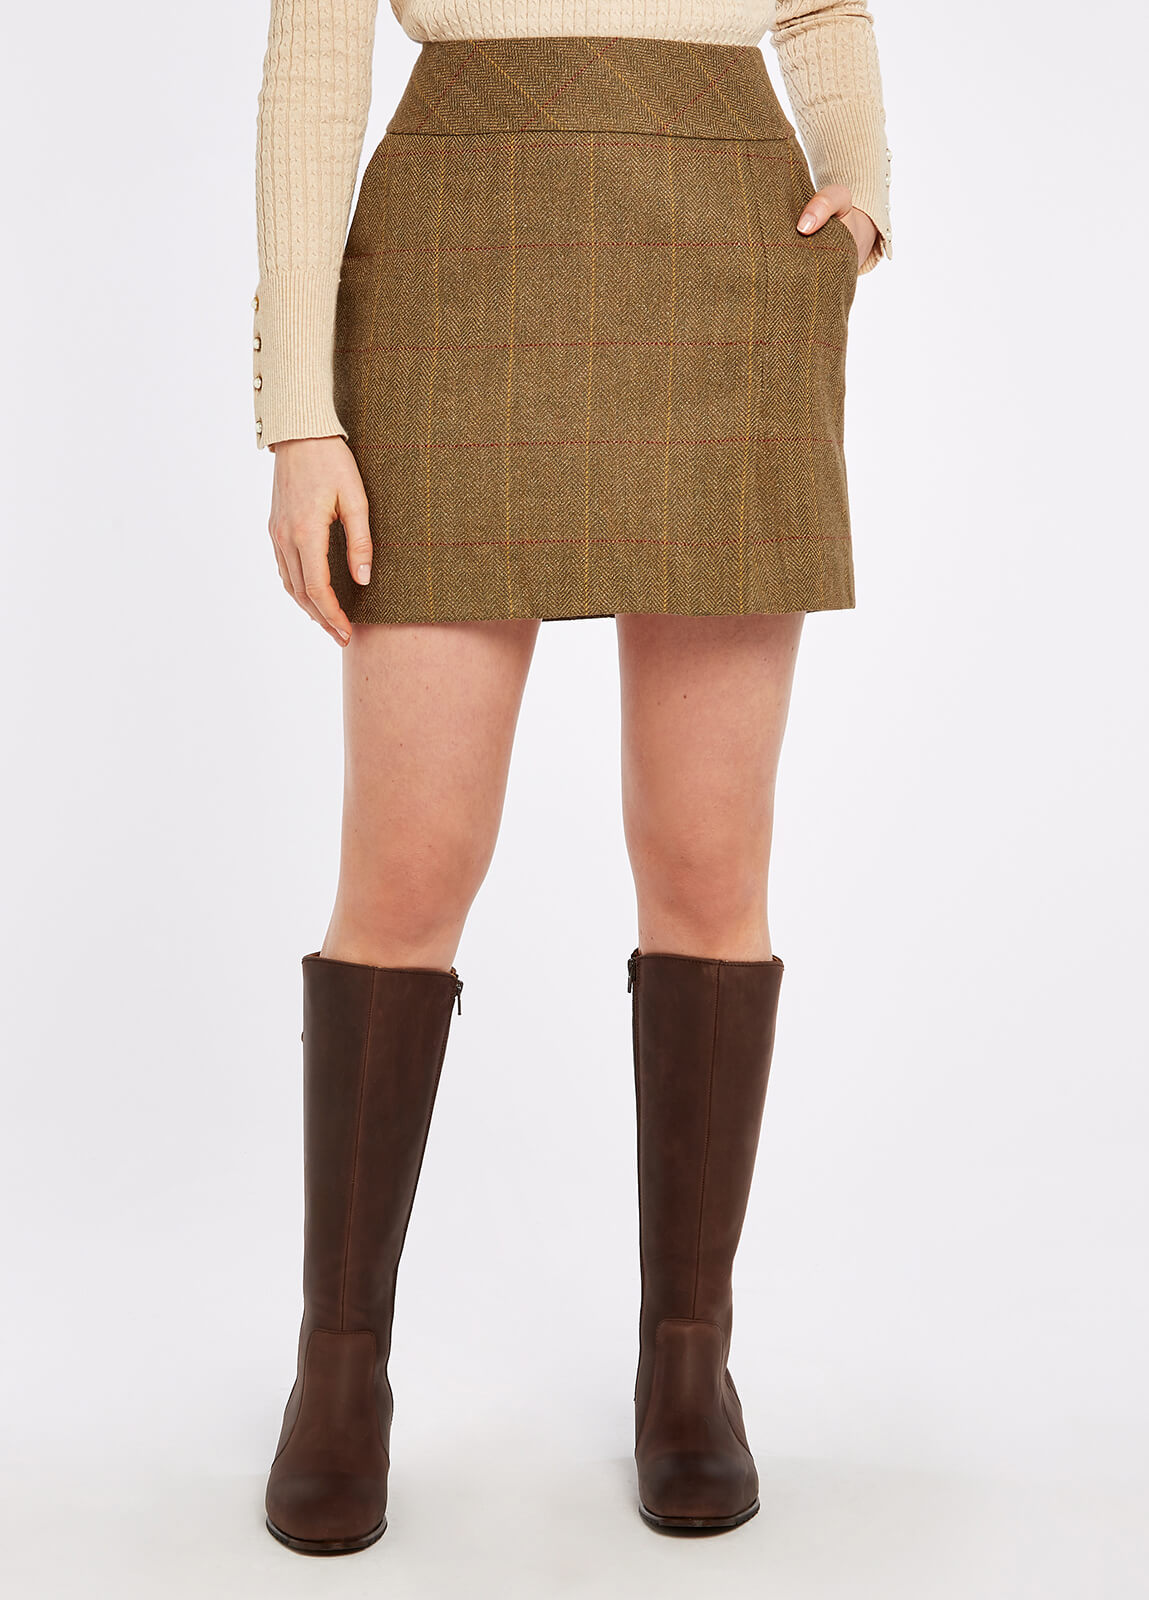 Bellflower Tweed Skirt - Elm